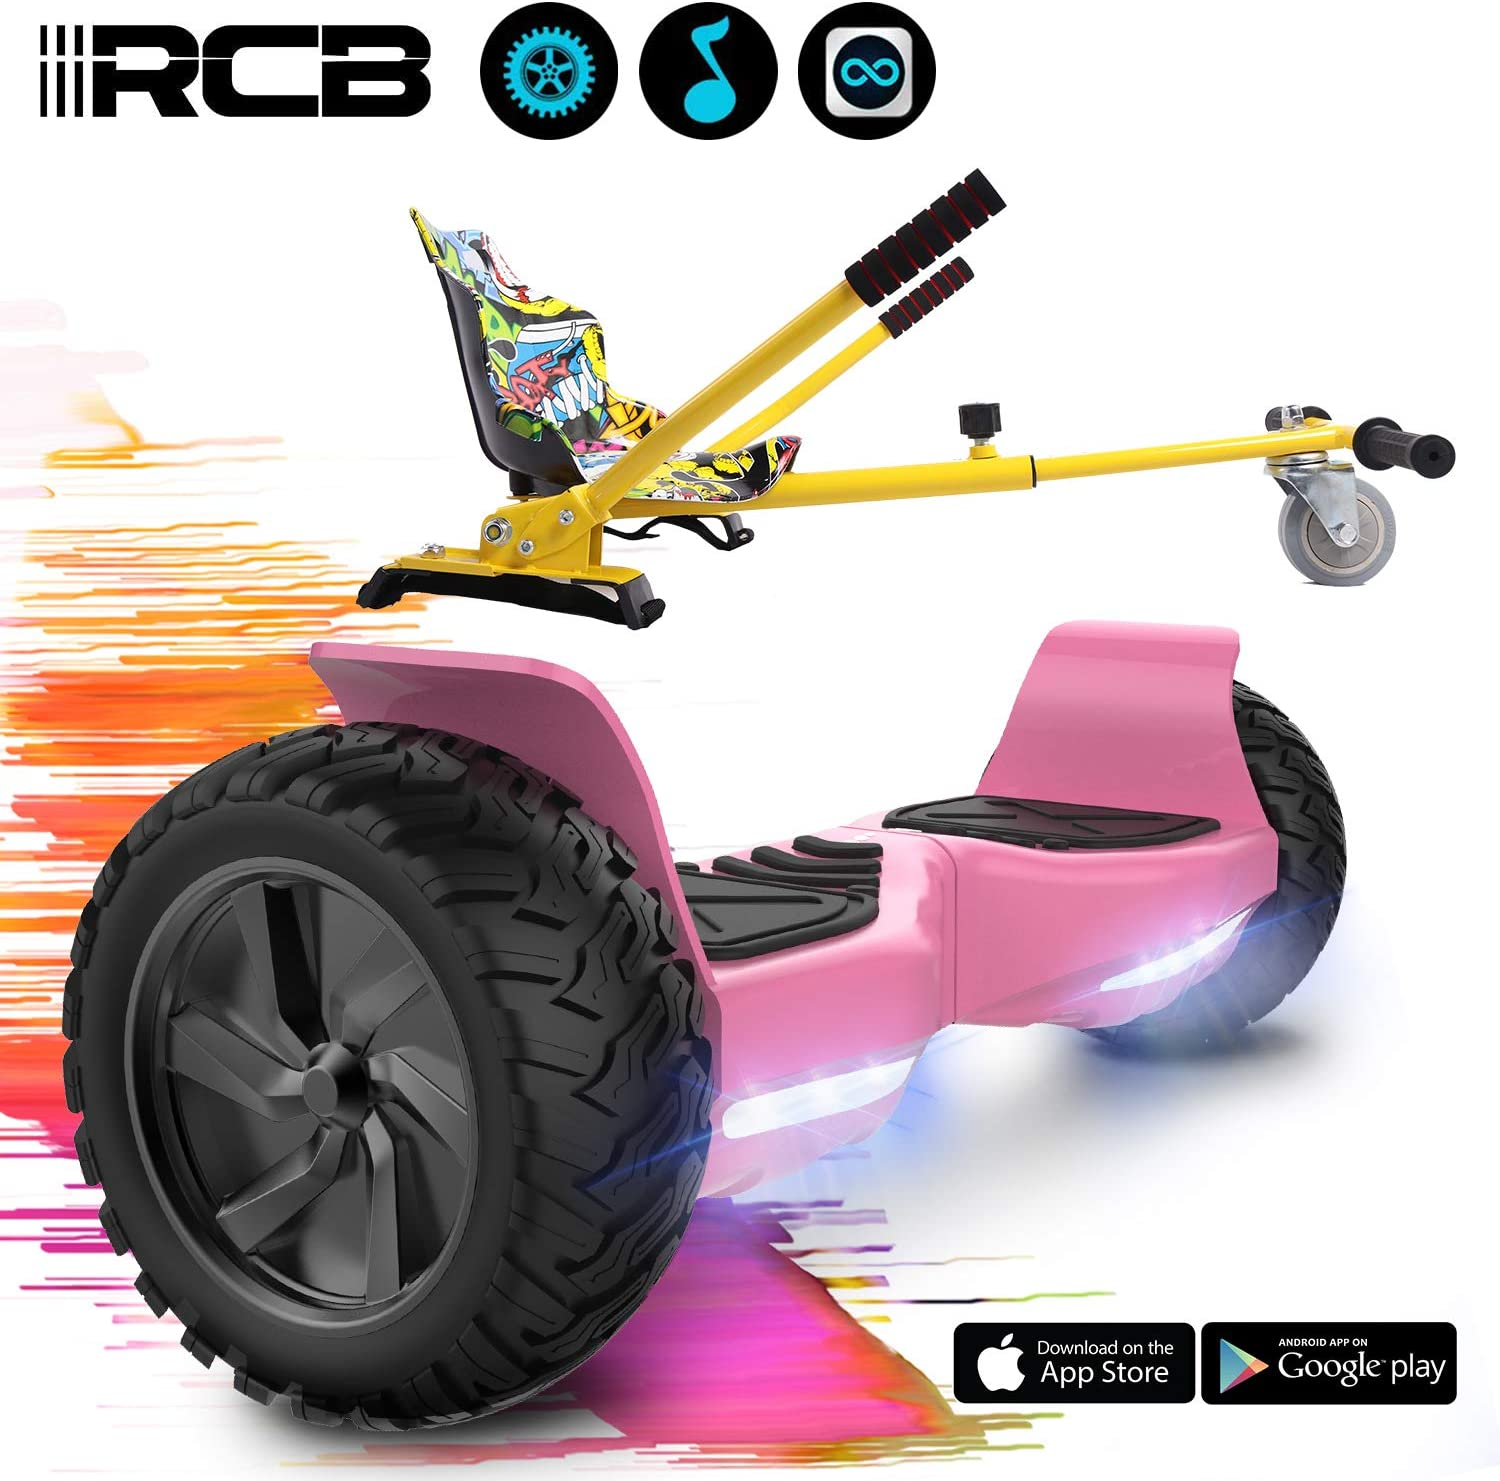 RCB 8.5 Inch Hover Scooter Board All Terrain Self Balancing Scooter with Powerful 2 350W Motors Built in Bluetooth APP LED Light Gift for Children and Teenagers